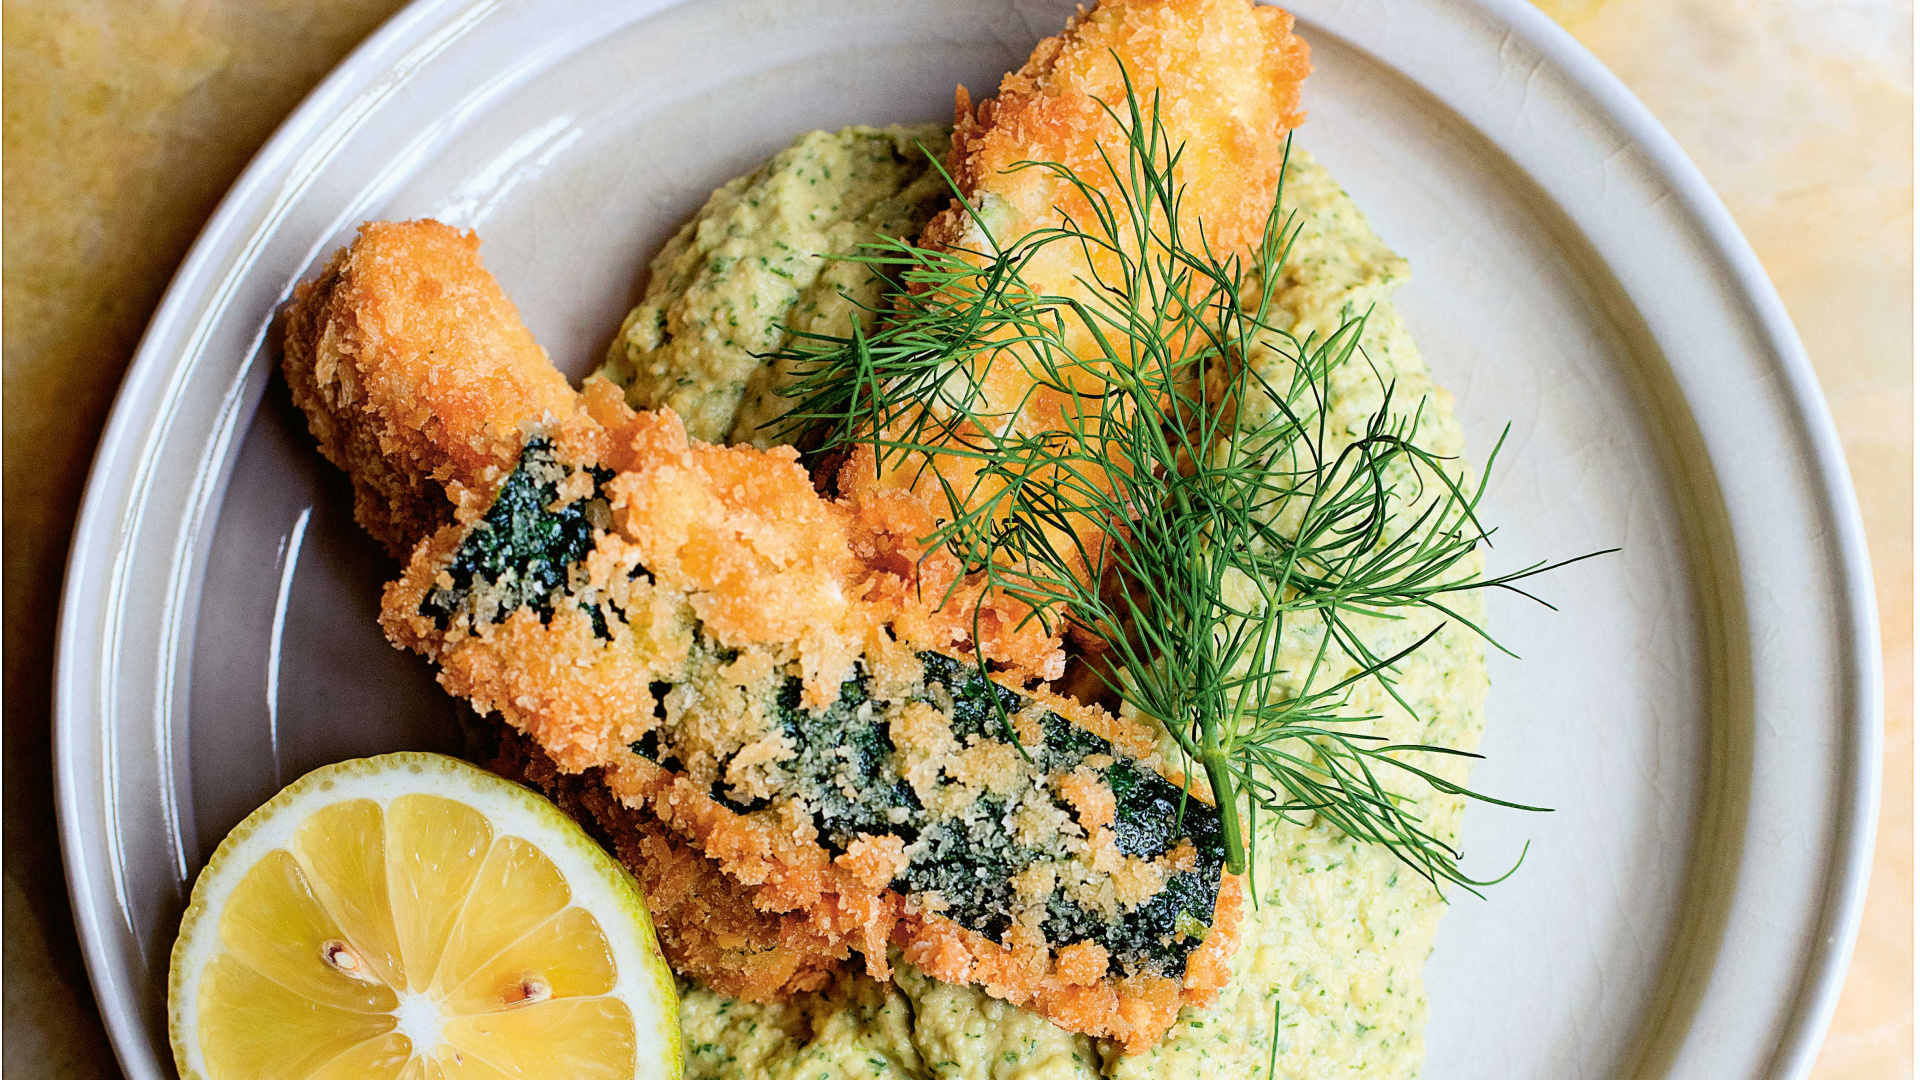 Make Nigel Slater's deep-fried courgettes and dill hummus